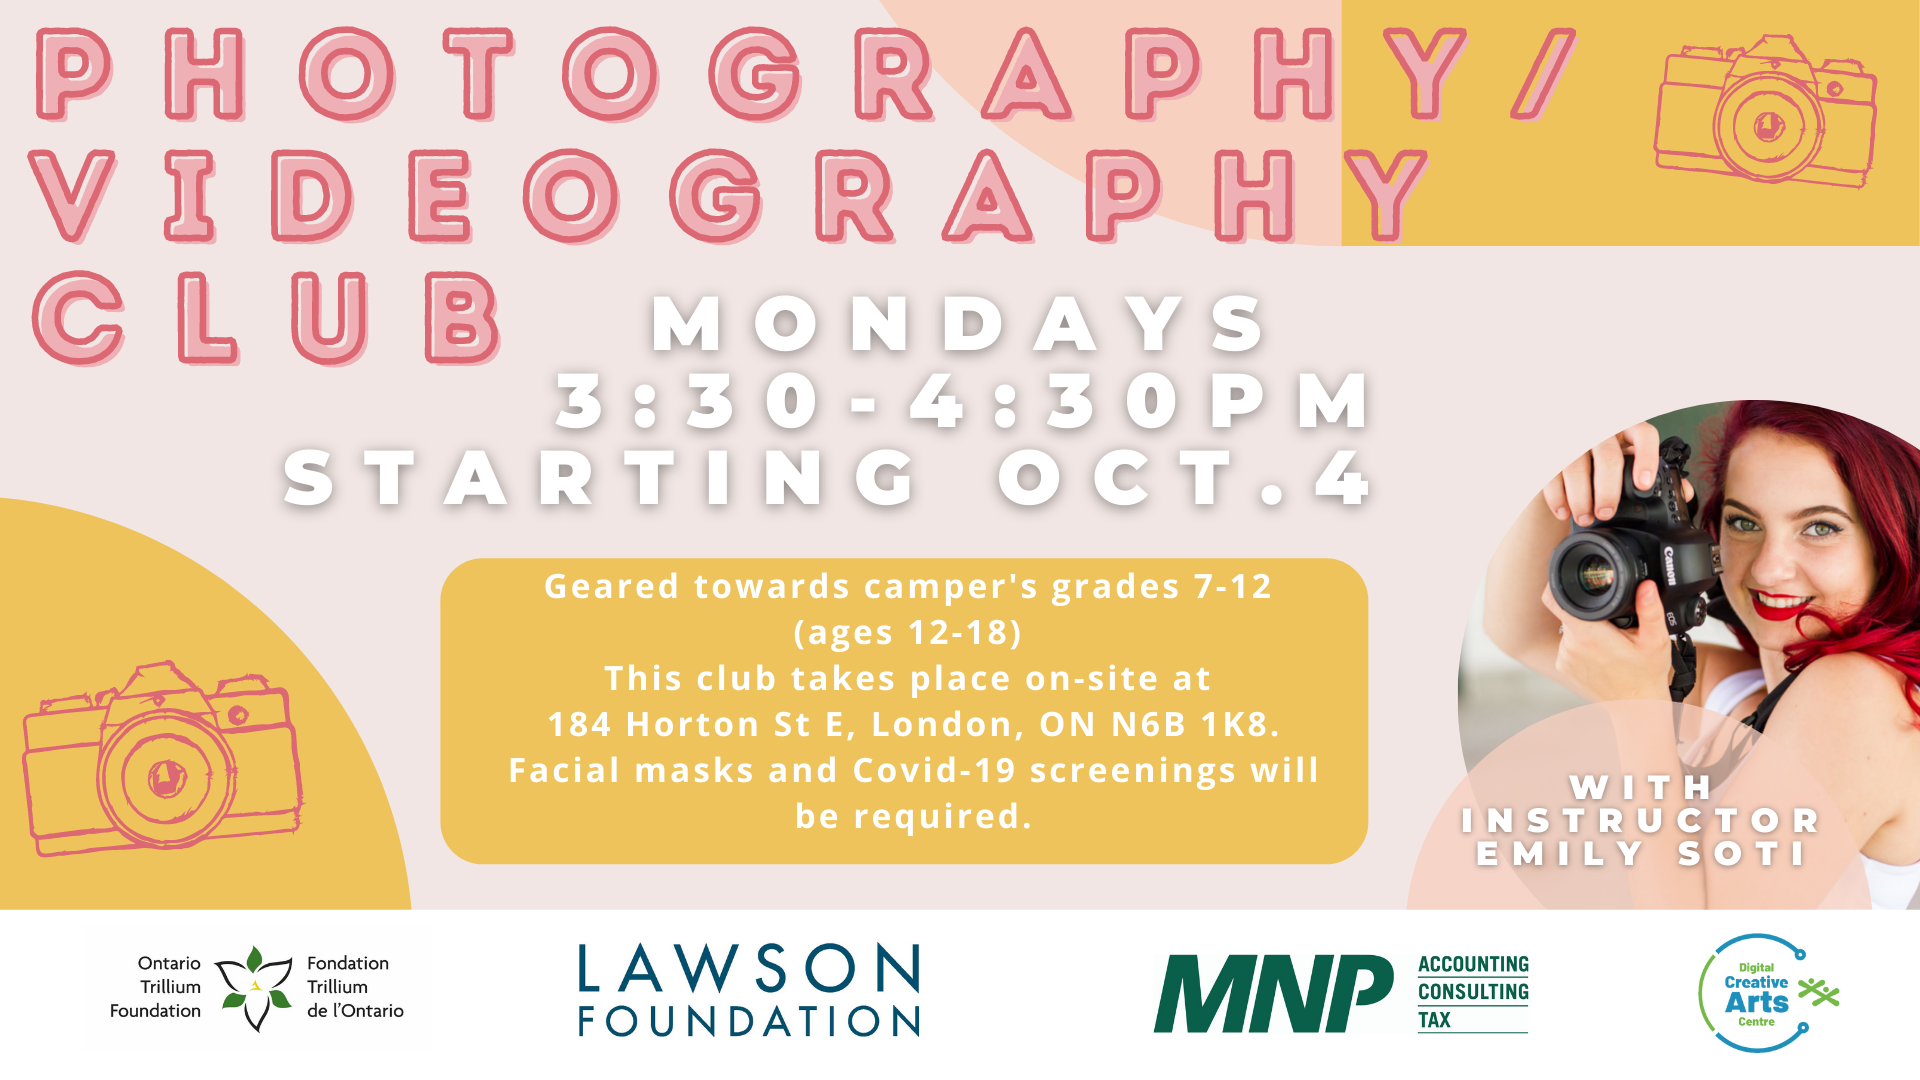 Photography/Videography Club